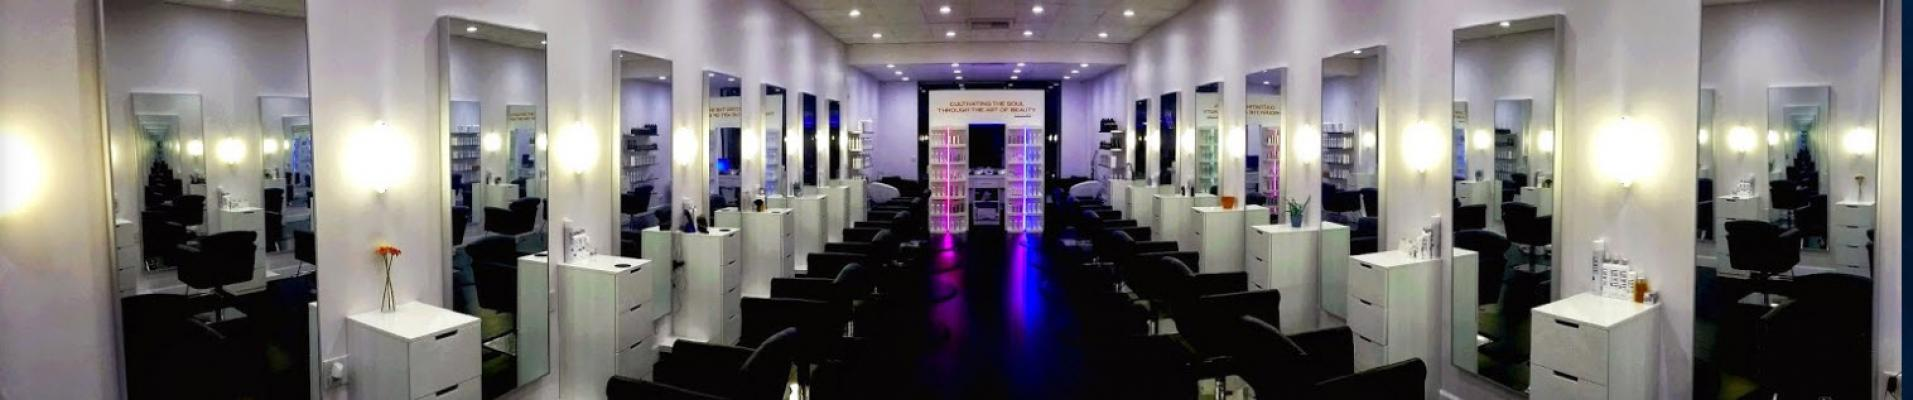 Hair Salon - Prime Location Business For Sale